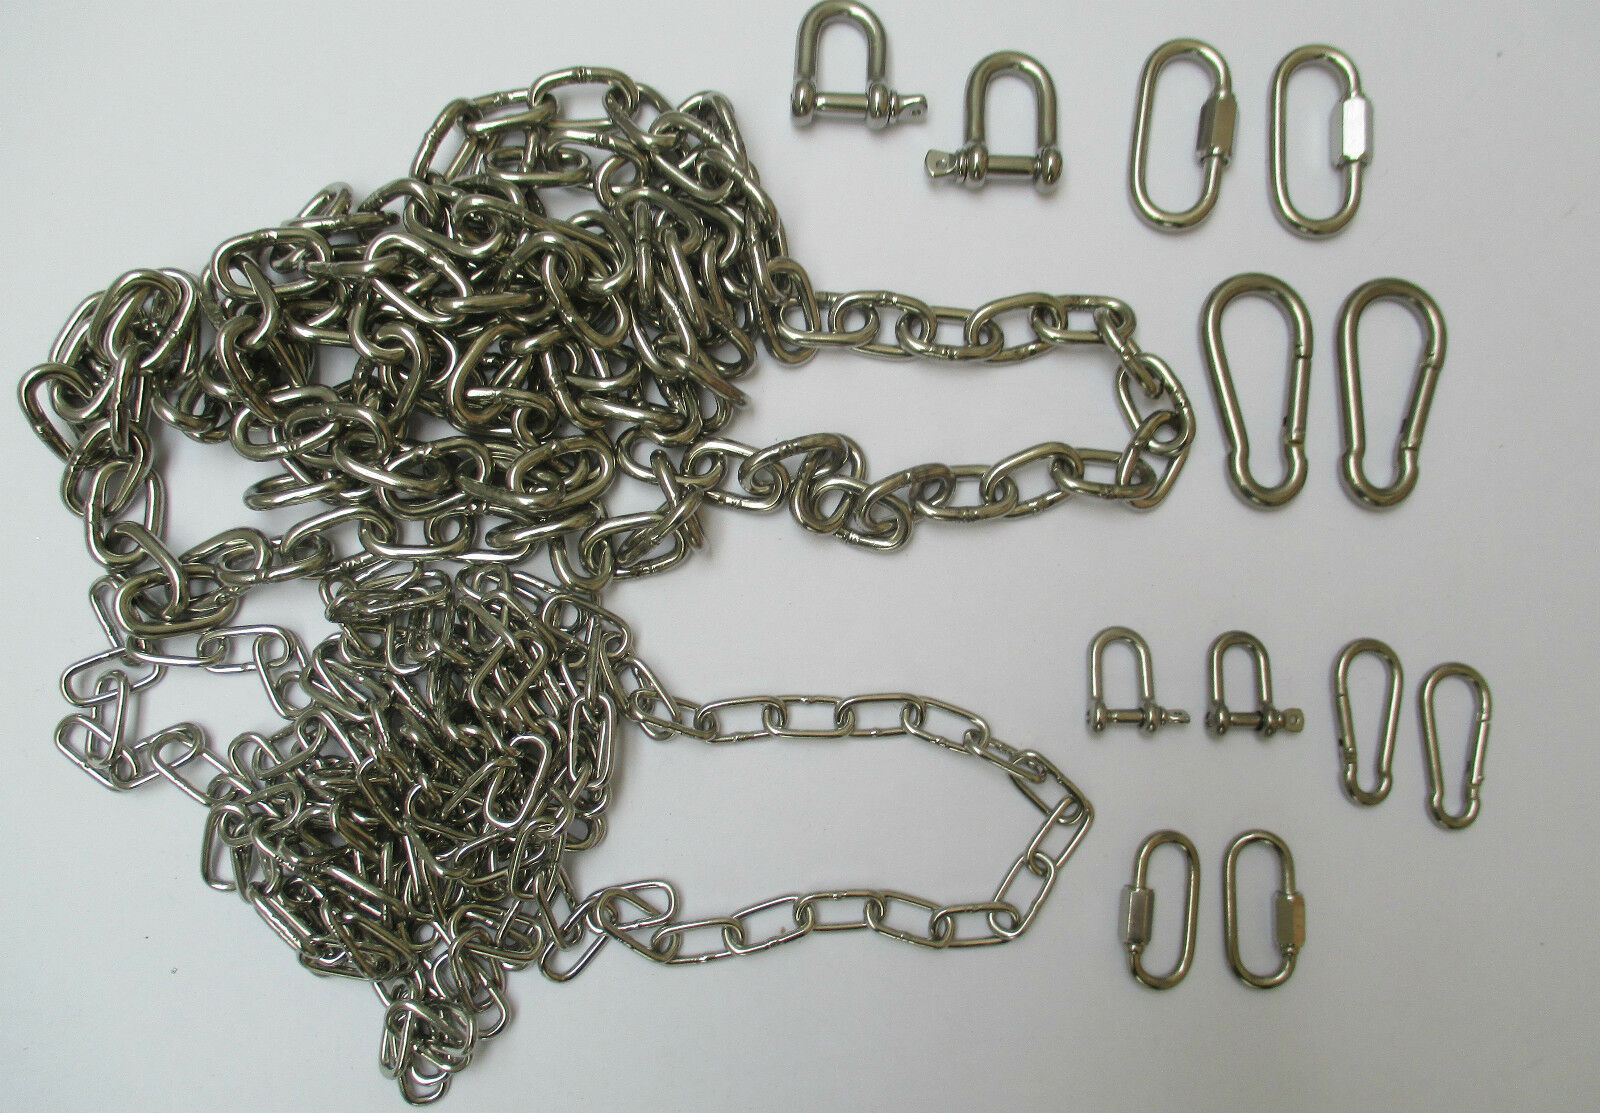 AISI 316  MARINE GRADE STAINLESS STEEL BOAT ANCHOR CHAIN ACCESSORIES